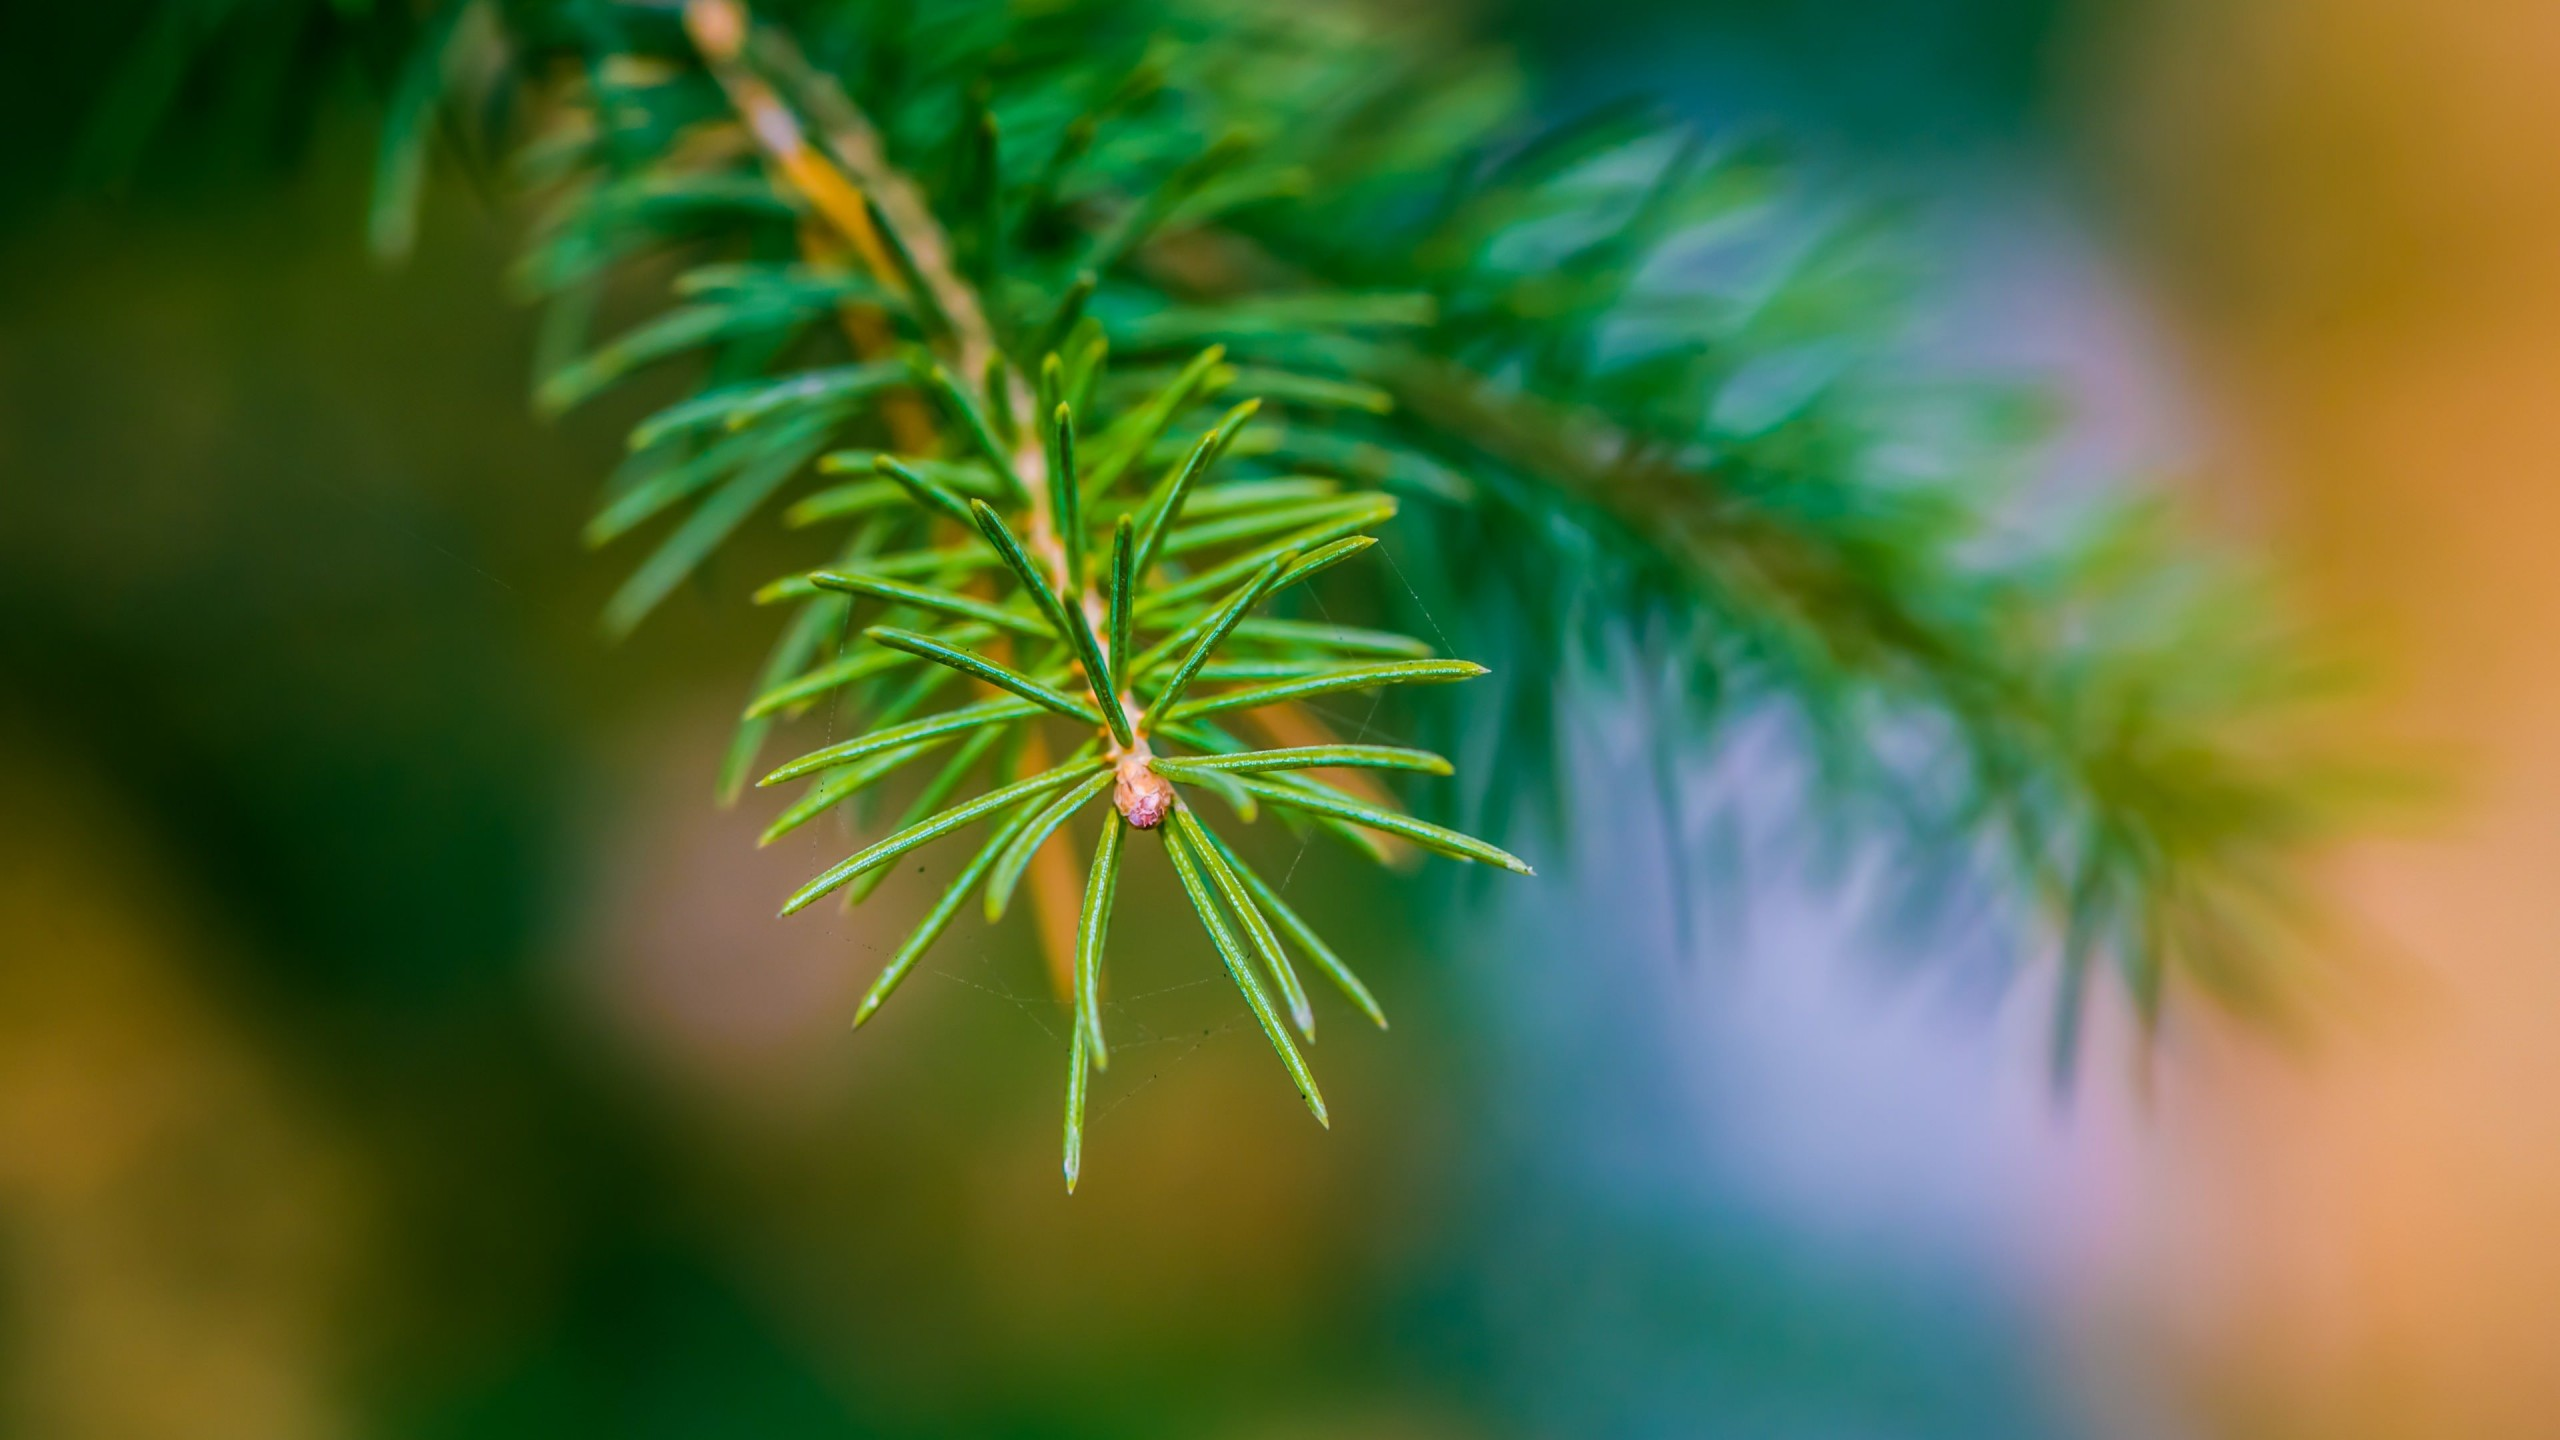 Fir Tree Branch Macro Wallpaper for Social Media YouTube Channel Art